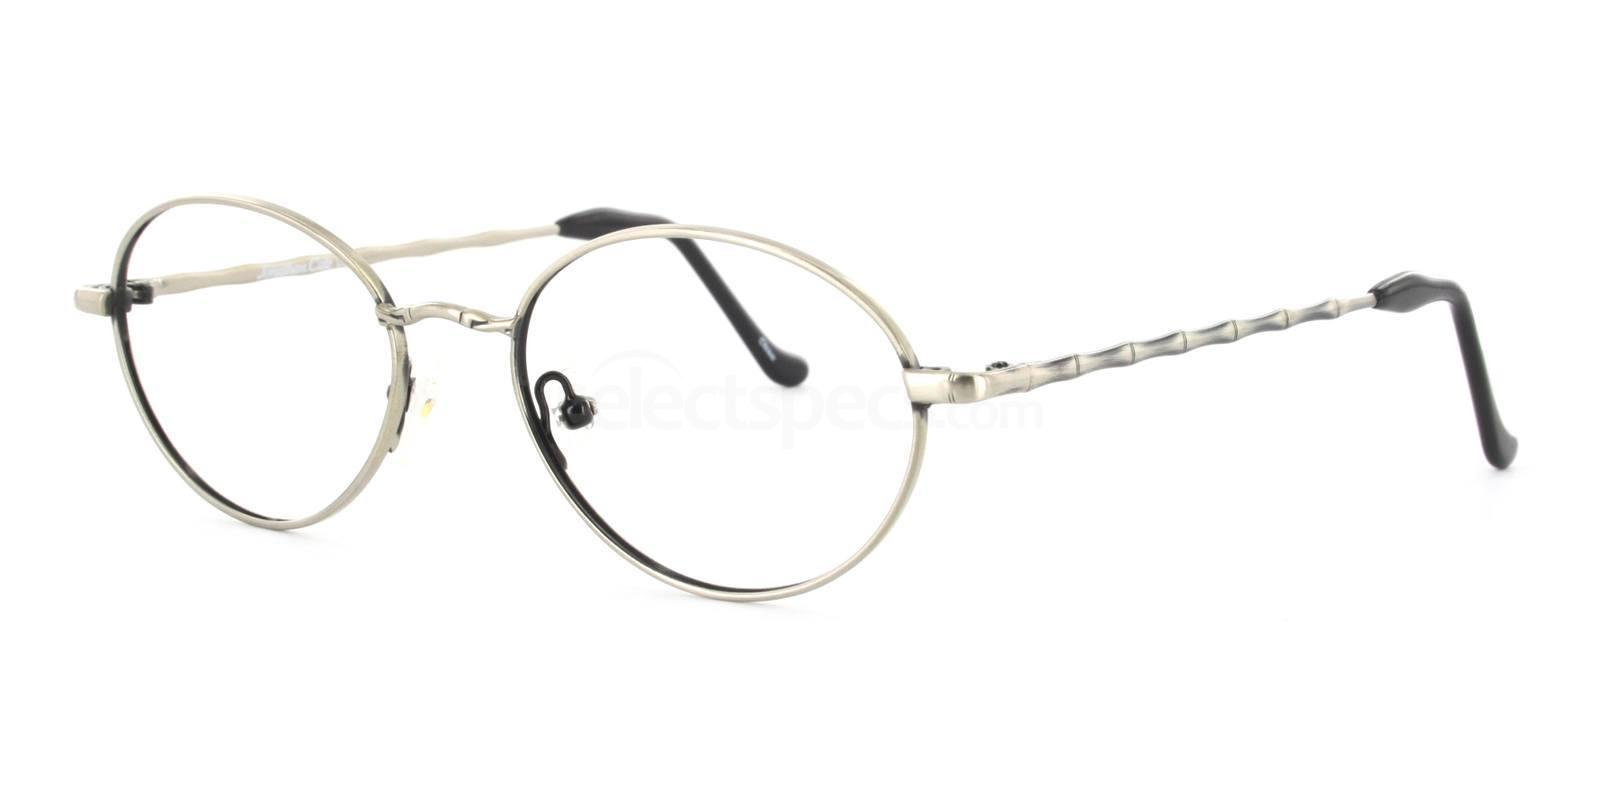 Antares 615 glasses